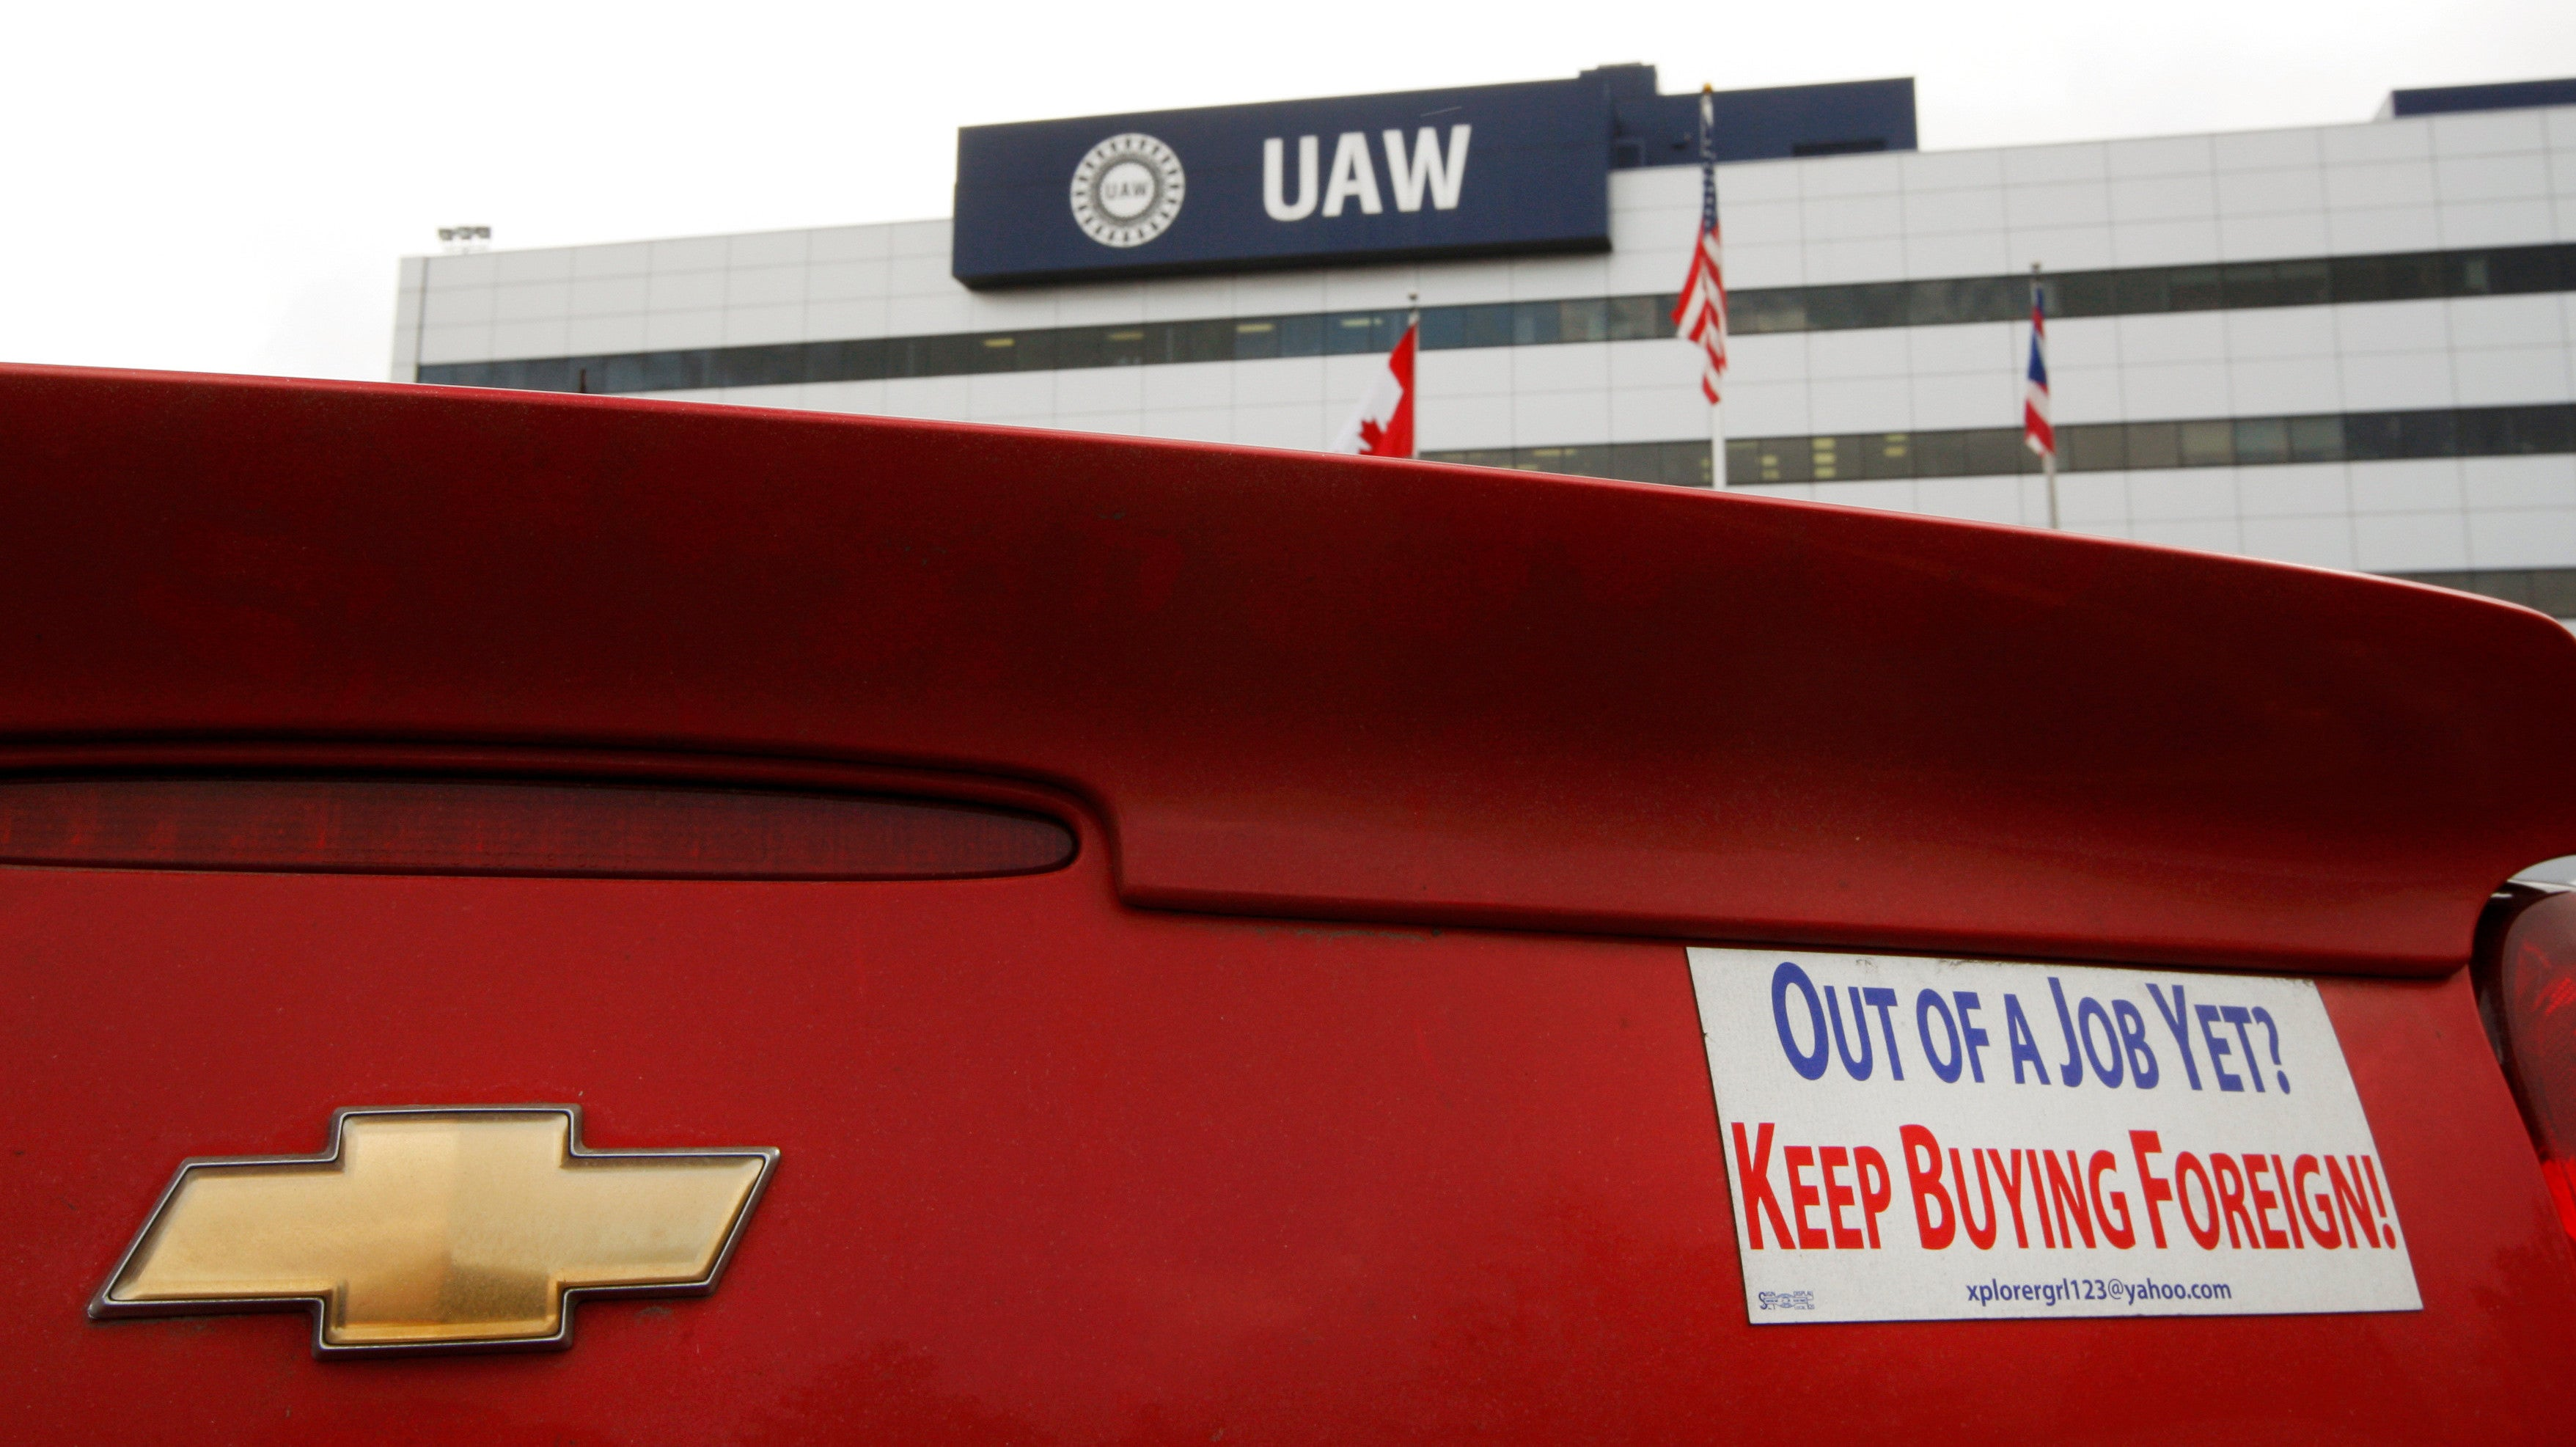 The UAW's Humiliation Is Almost Complete